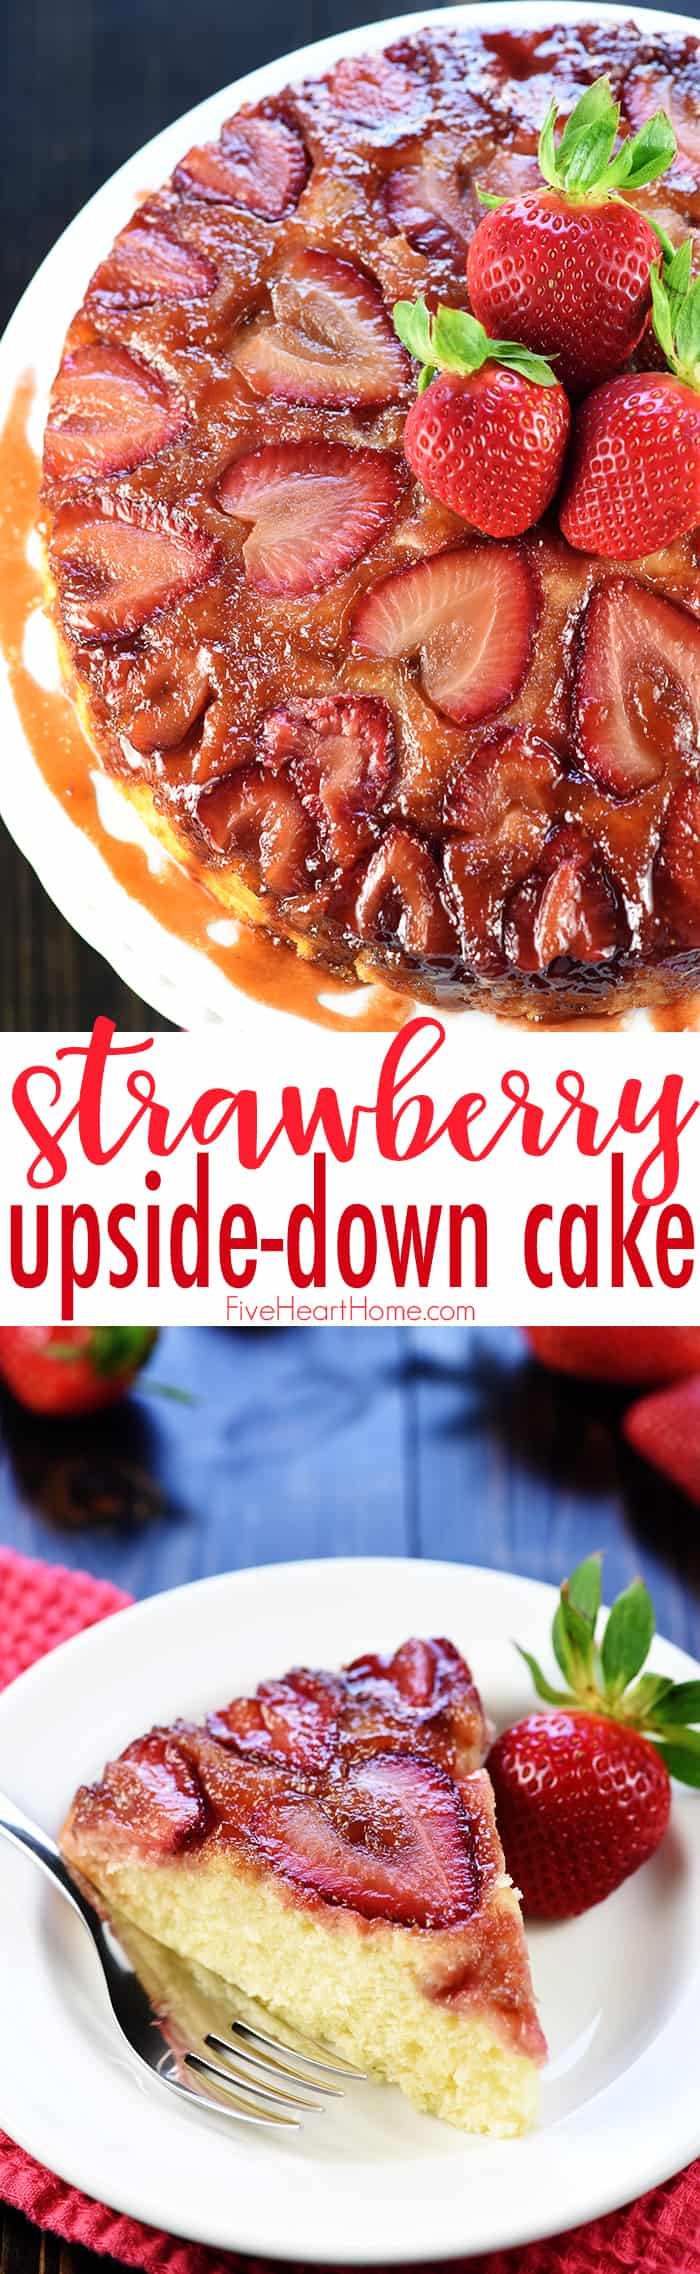 Strawberry Upside-Down Cake whole and sliced collage with text